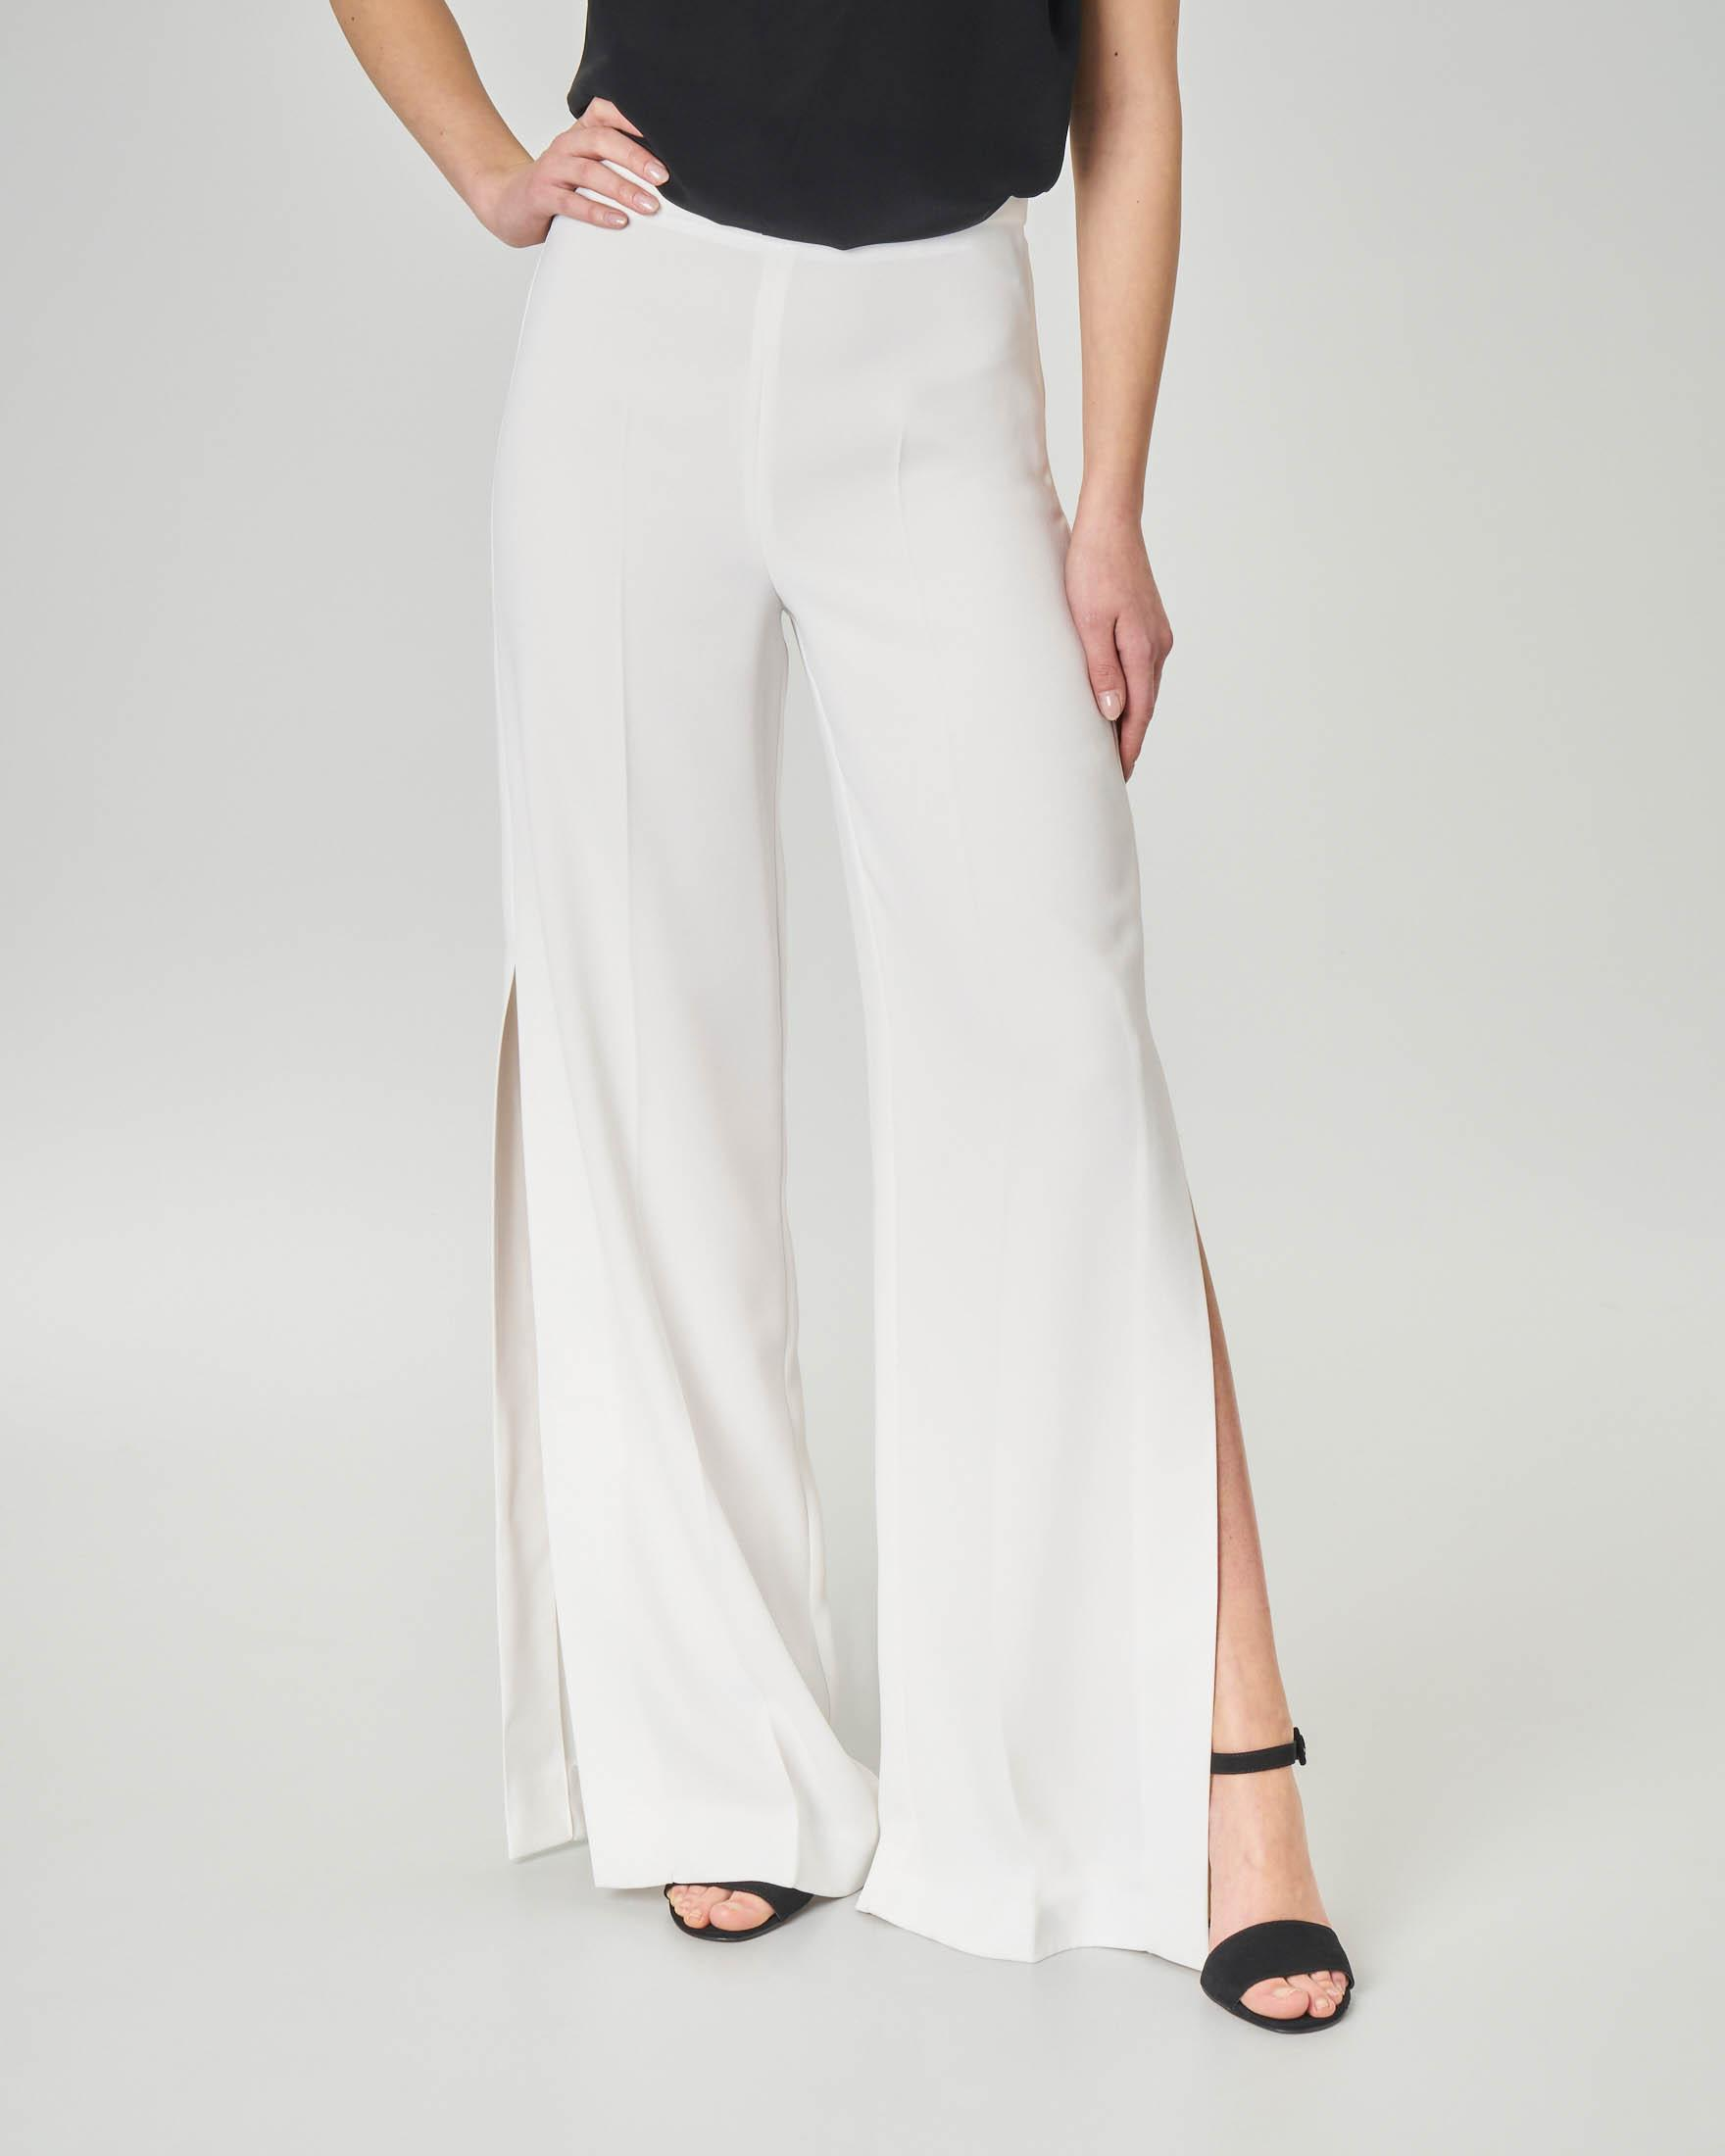 Pantaloni in cady bianchi con spacco laterale